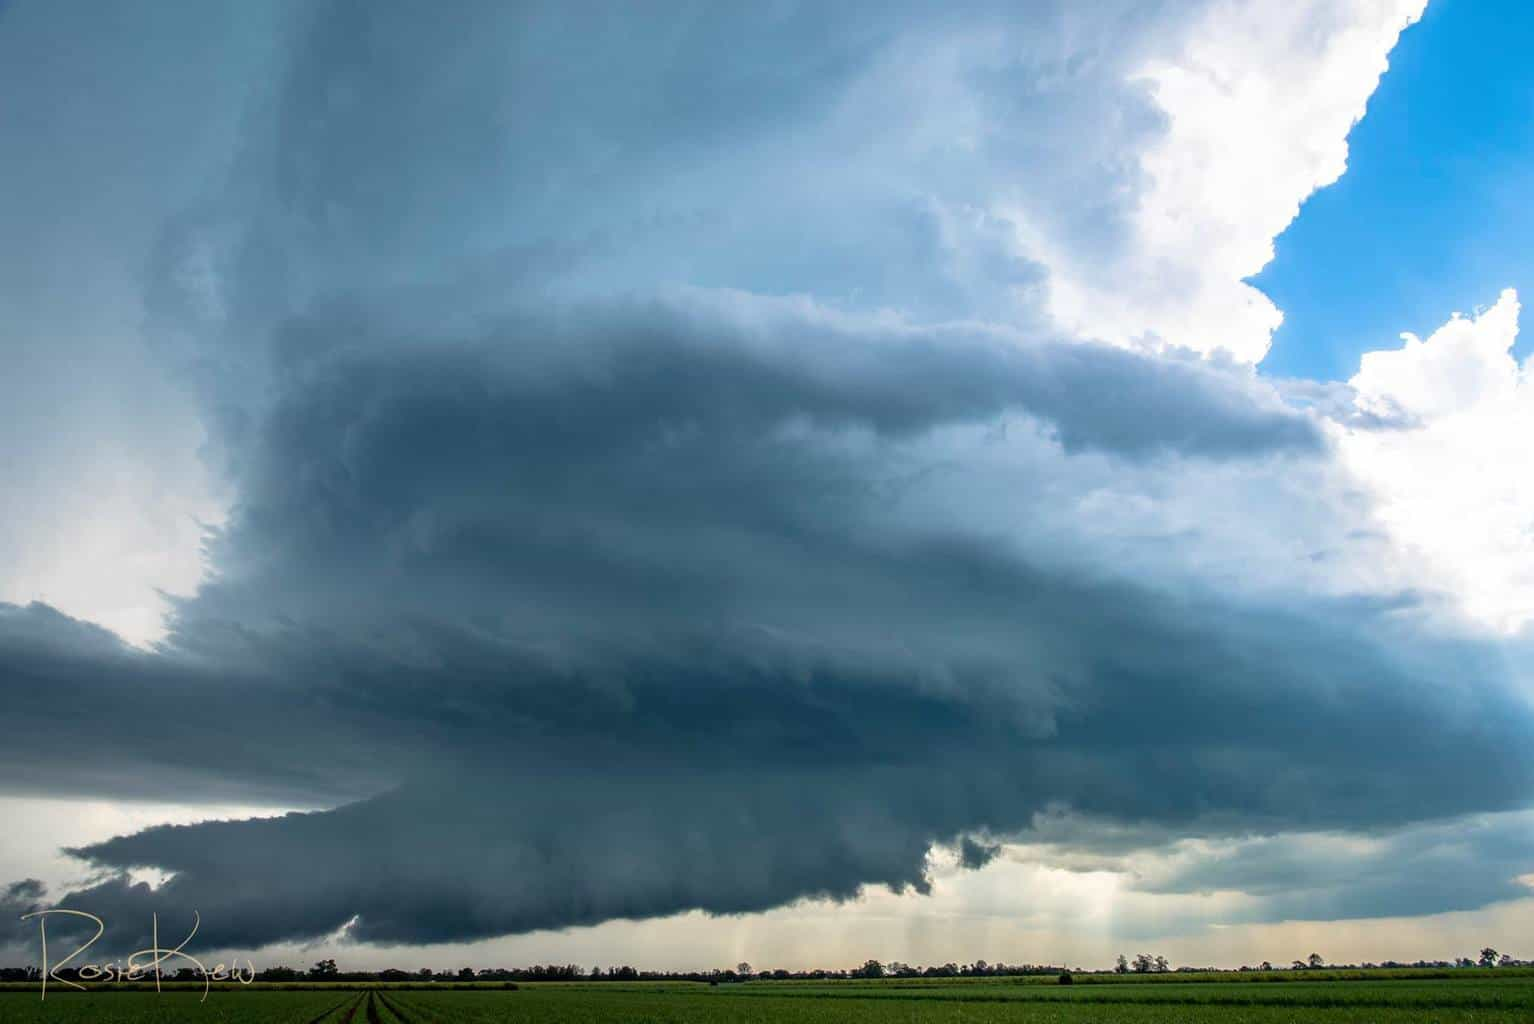 I don't think I have posted this one before (some others from this storm) - This was the Classic Supercell that formed near Lismore Northern NSW Australia. Such stunning structure for this part of the world!